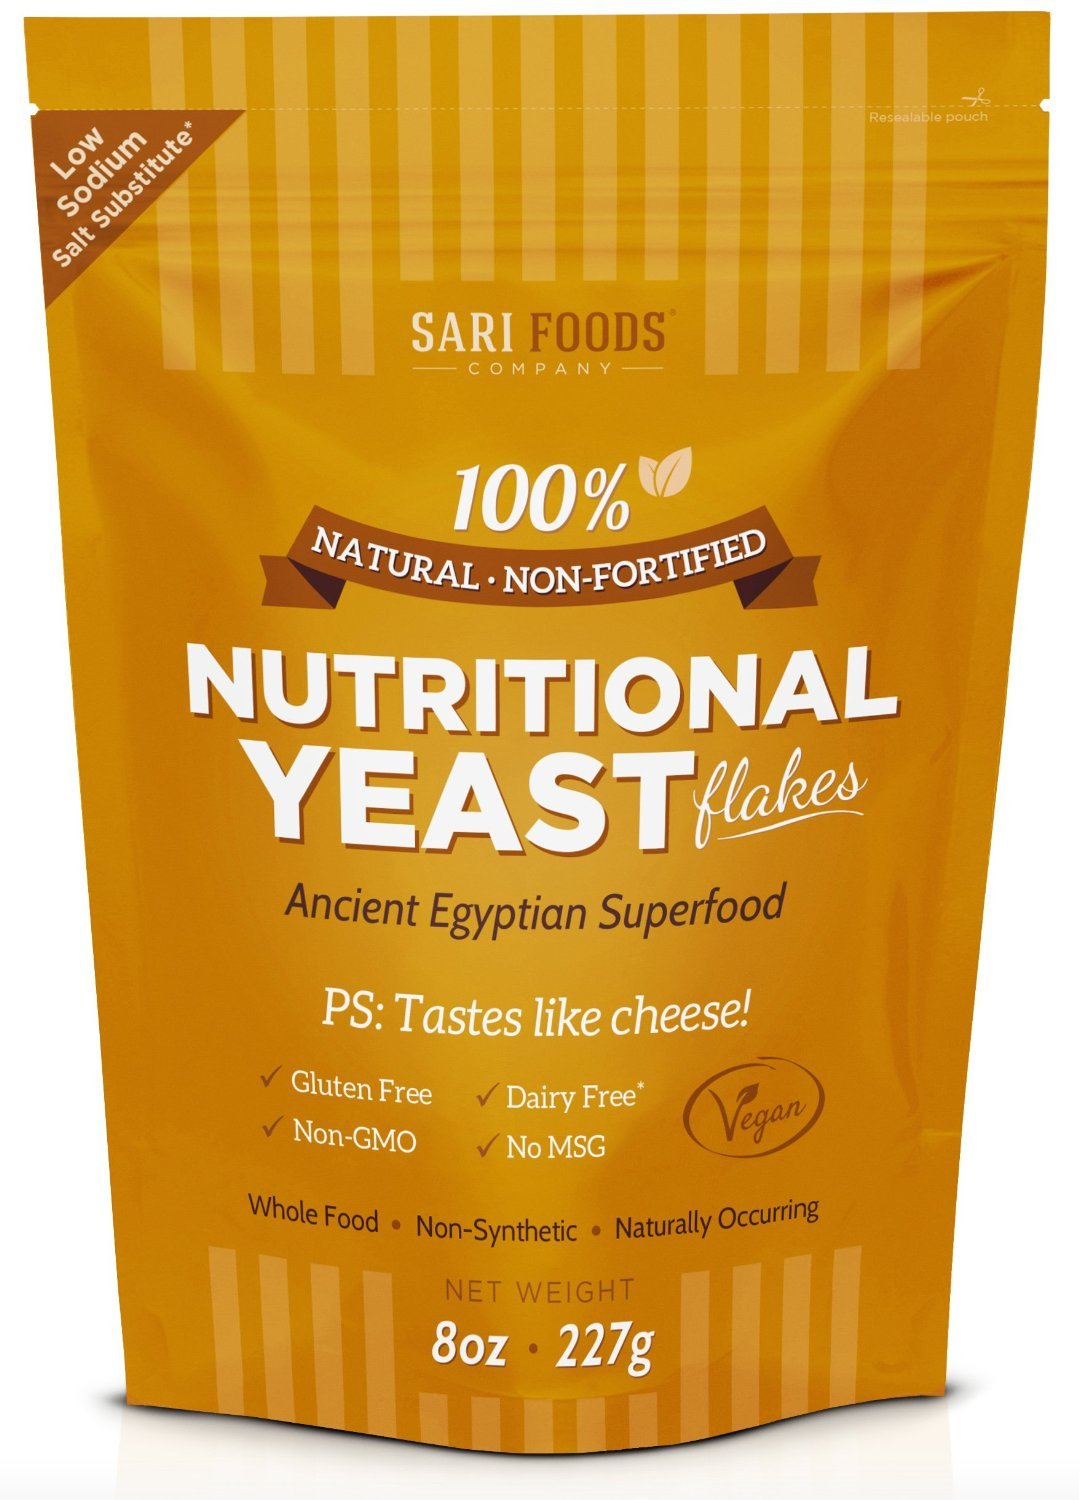 Pure Natural Non-fortified Nutritional Yeast Flakes, 8 oz. Whole food based Vitamin B complex, beta-glucans and all 18 Amino Acids protein powder.